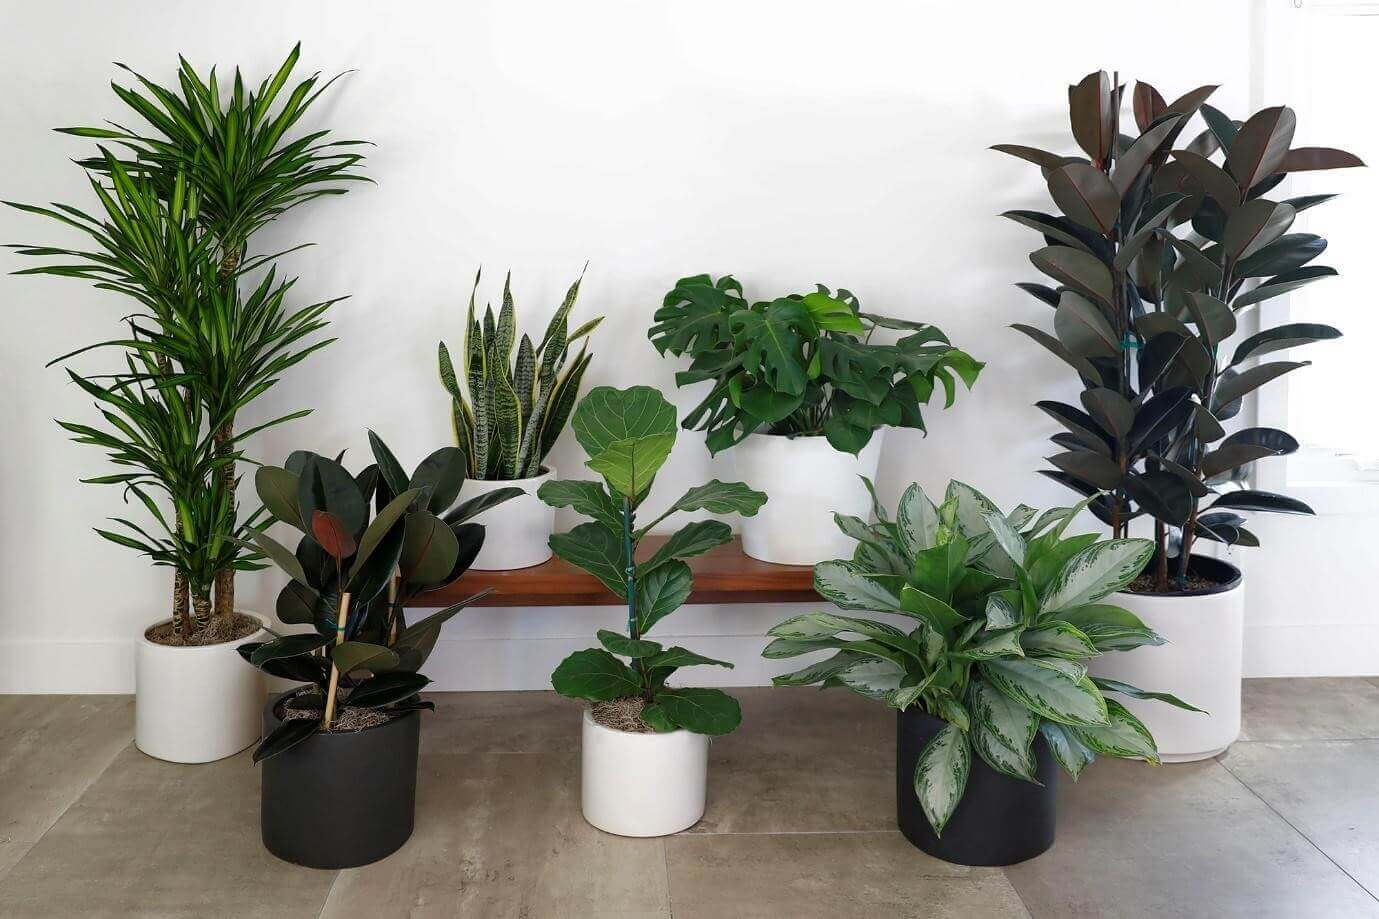 Tips For Styling Plants in Your Home and Garden